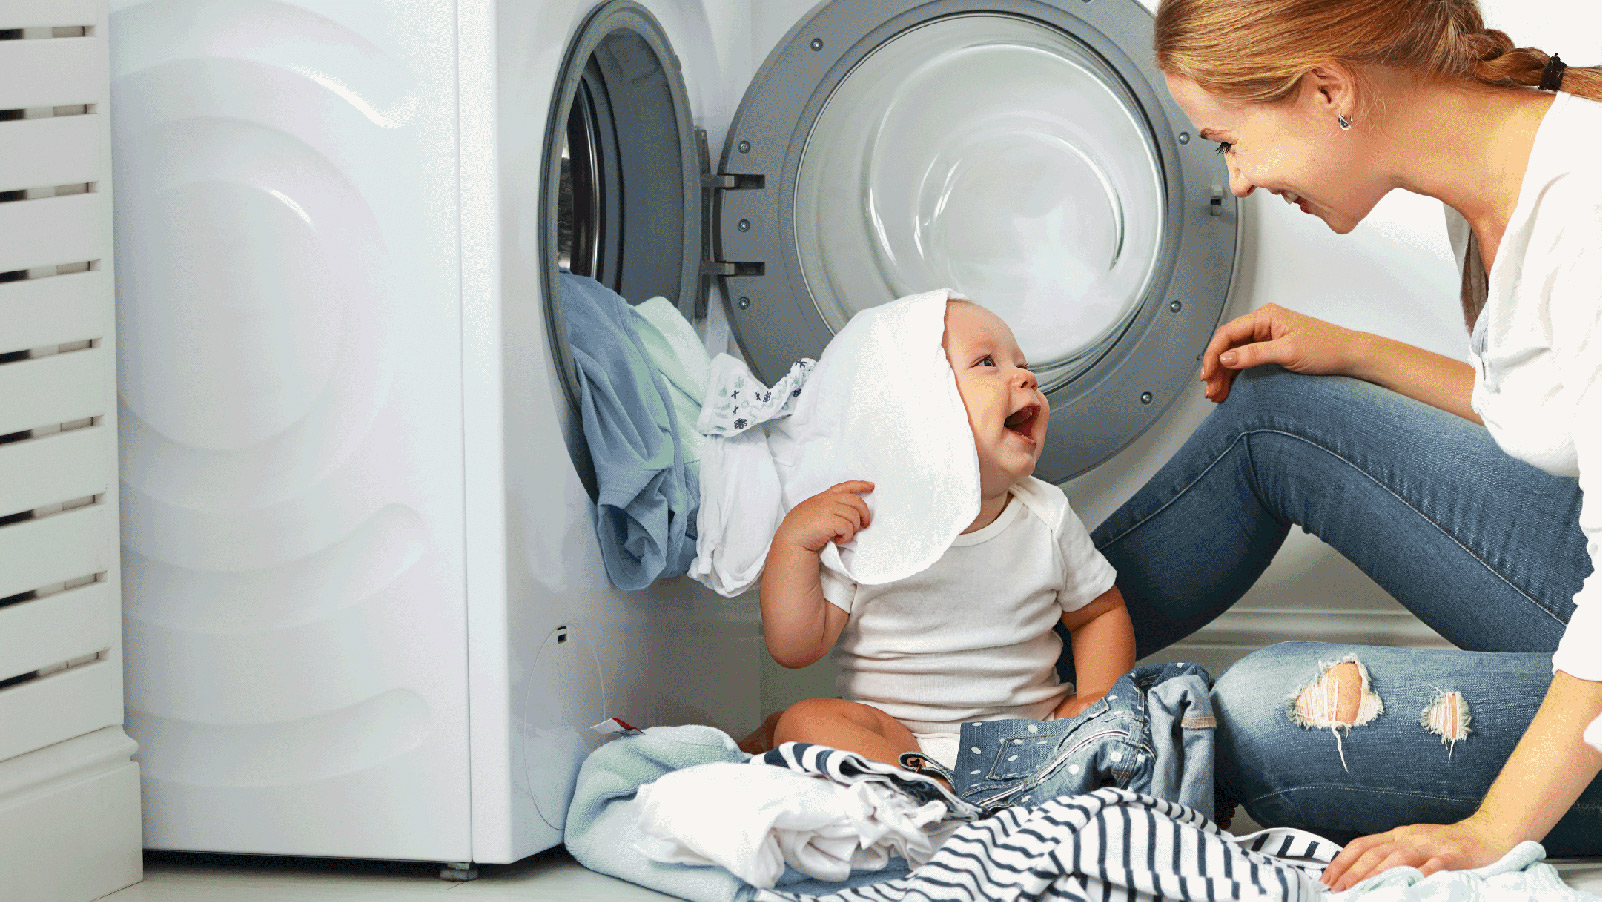 Mother and her baby smiling and playing in the laundry room.